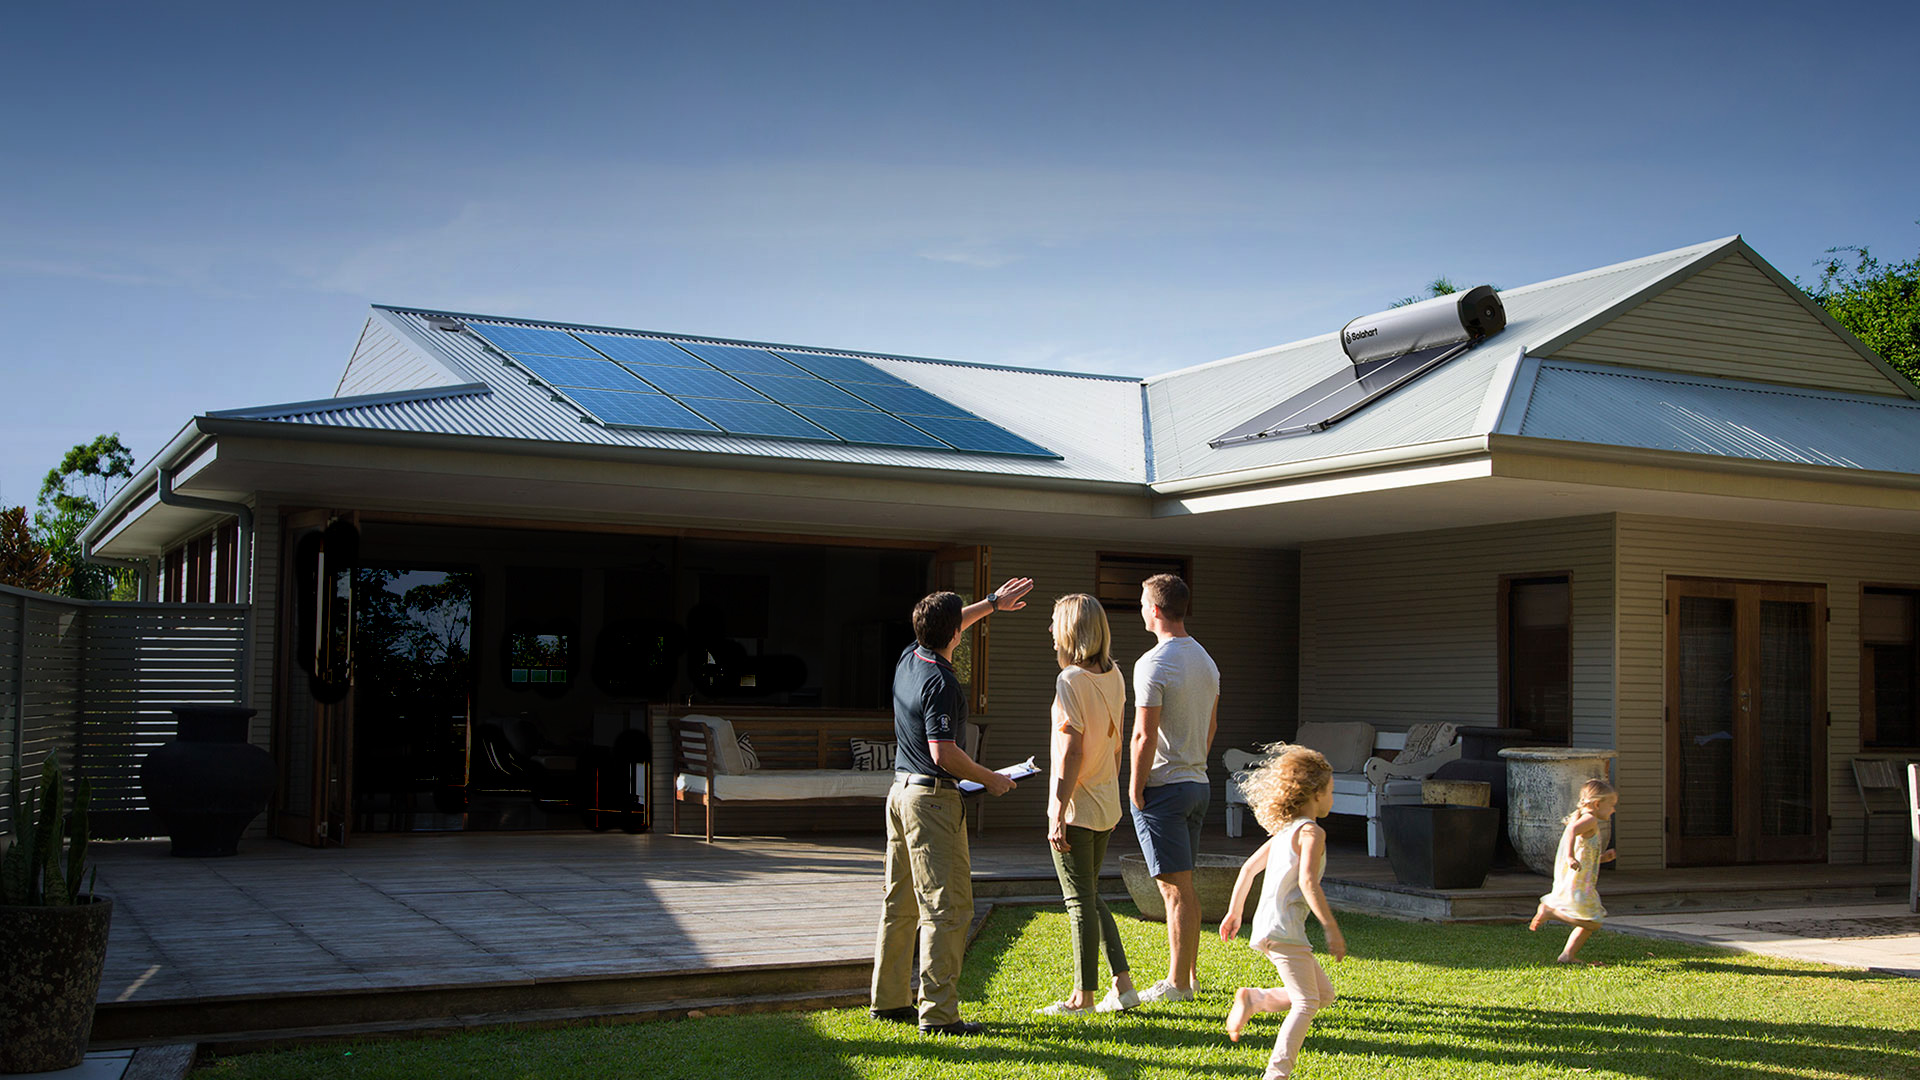 Why Solahart is the best choice for solar